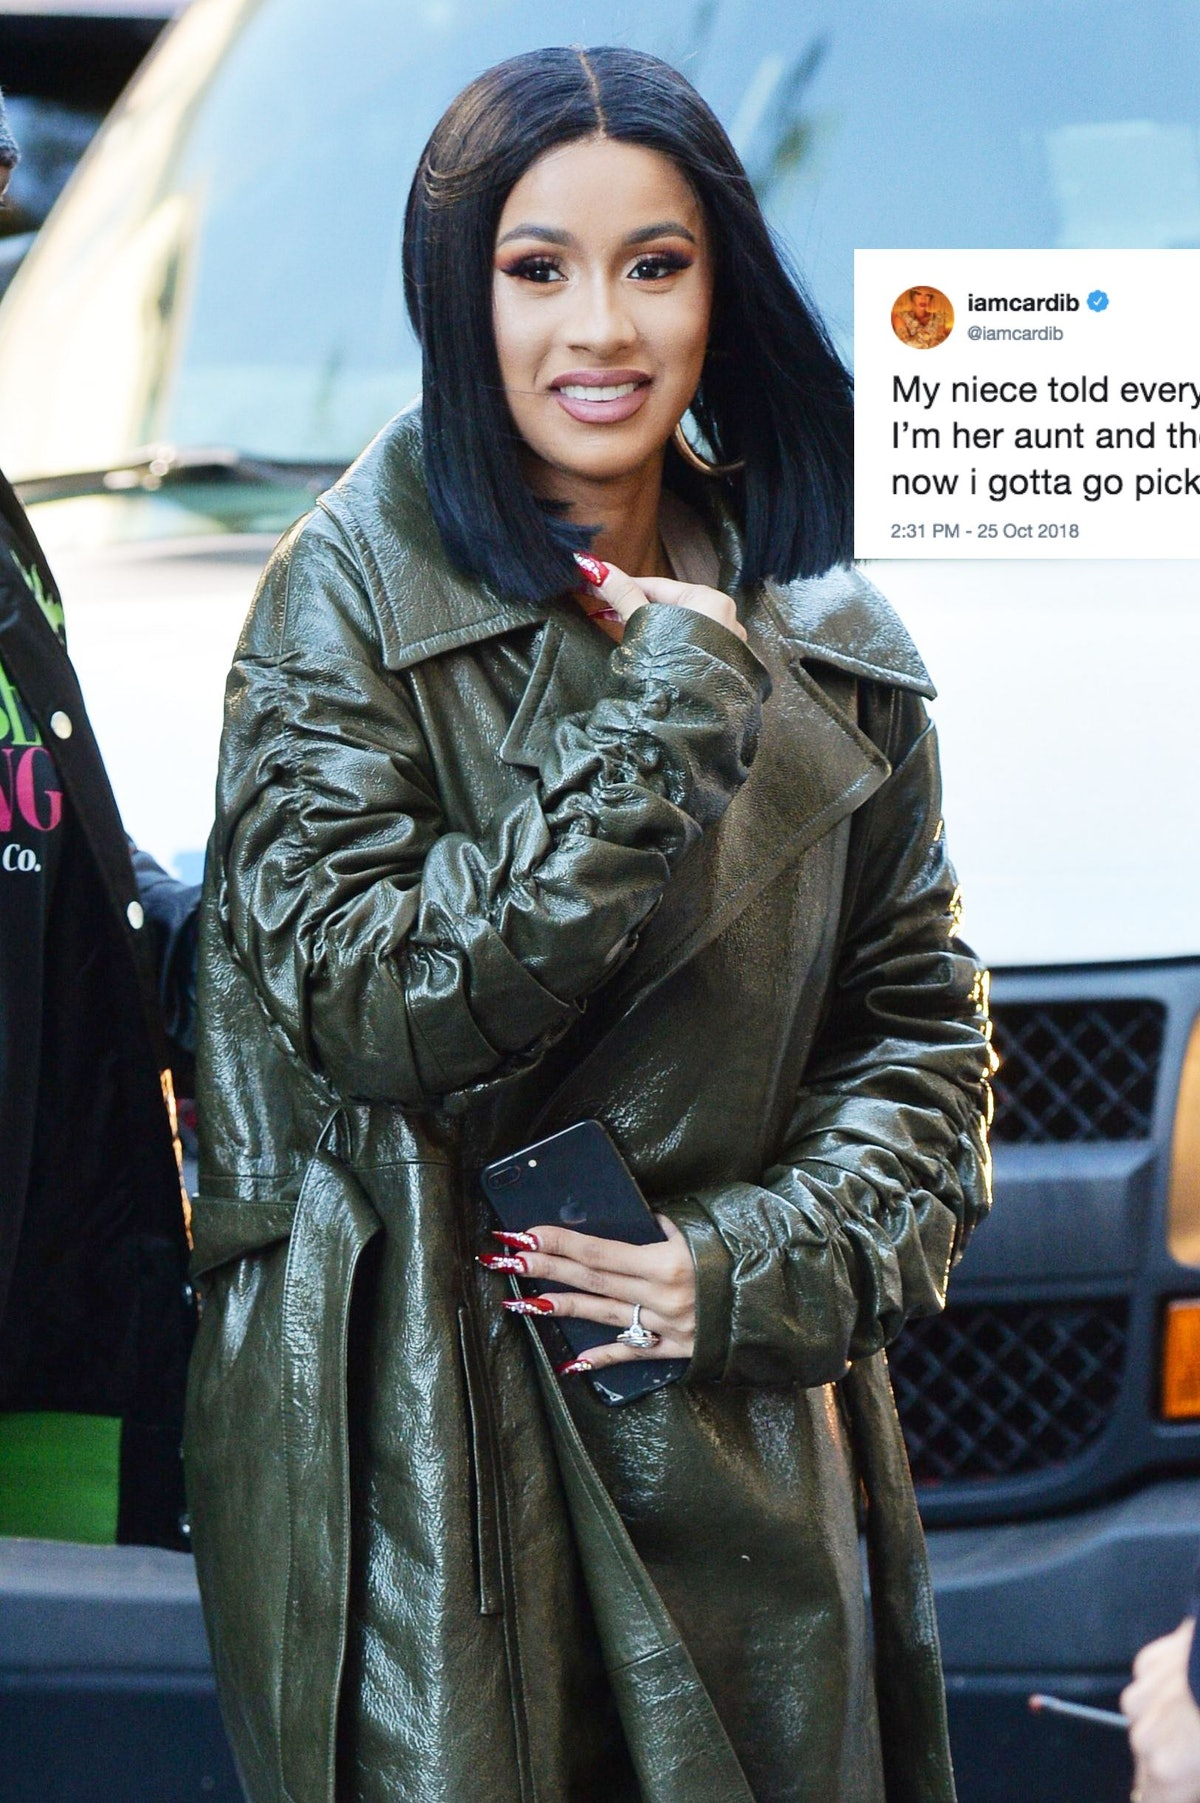 Cardi B's Tweet About Picking Up Her Niece From School Is Spurring The Best Responses